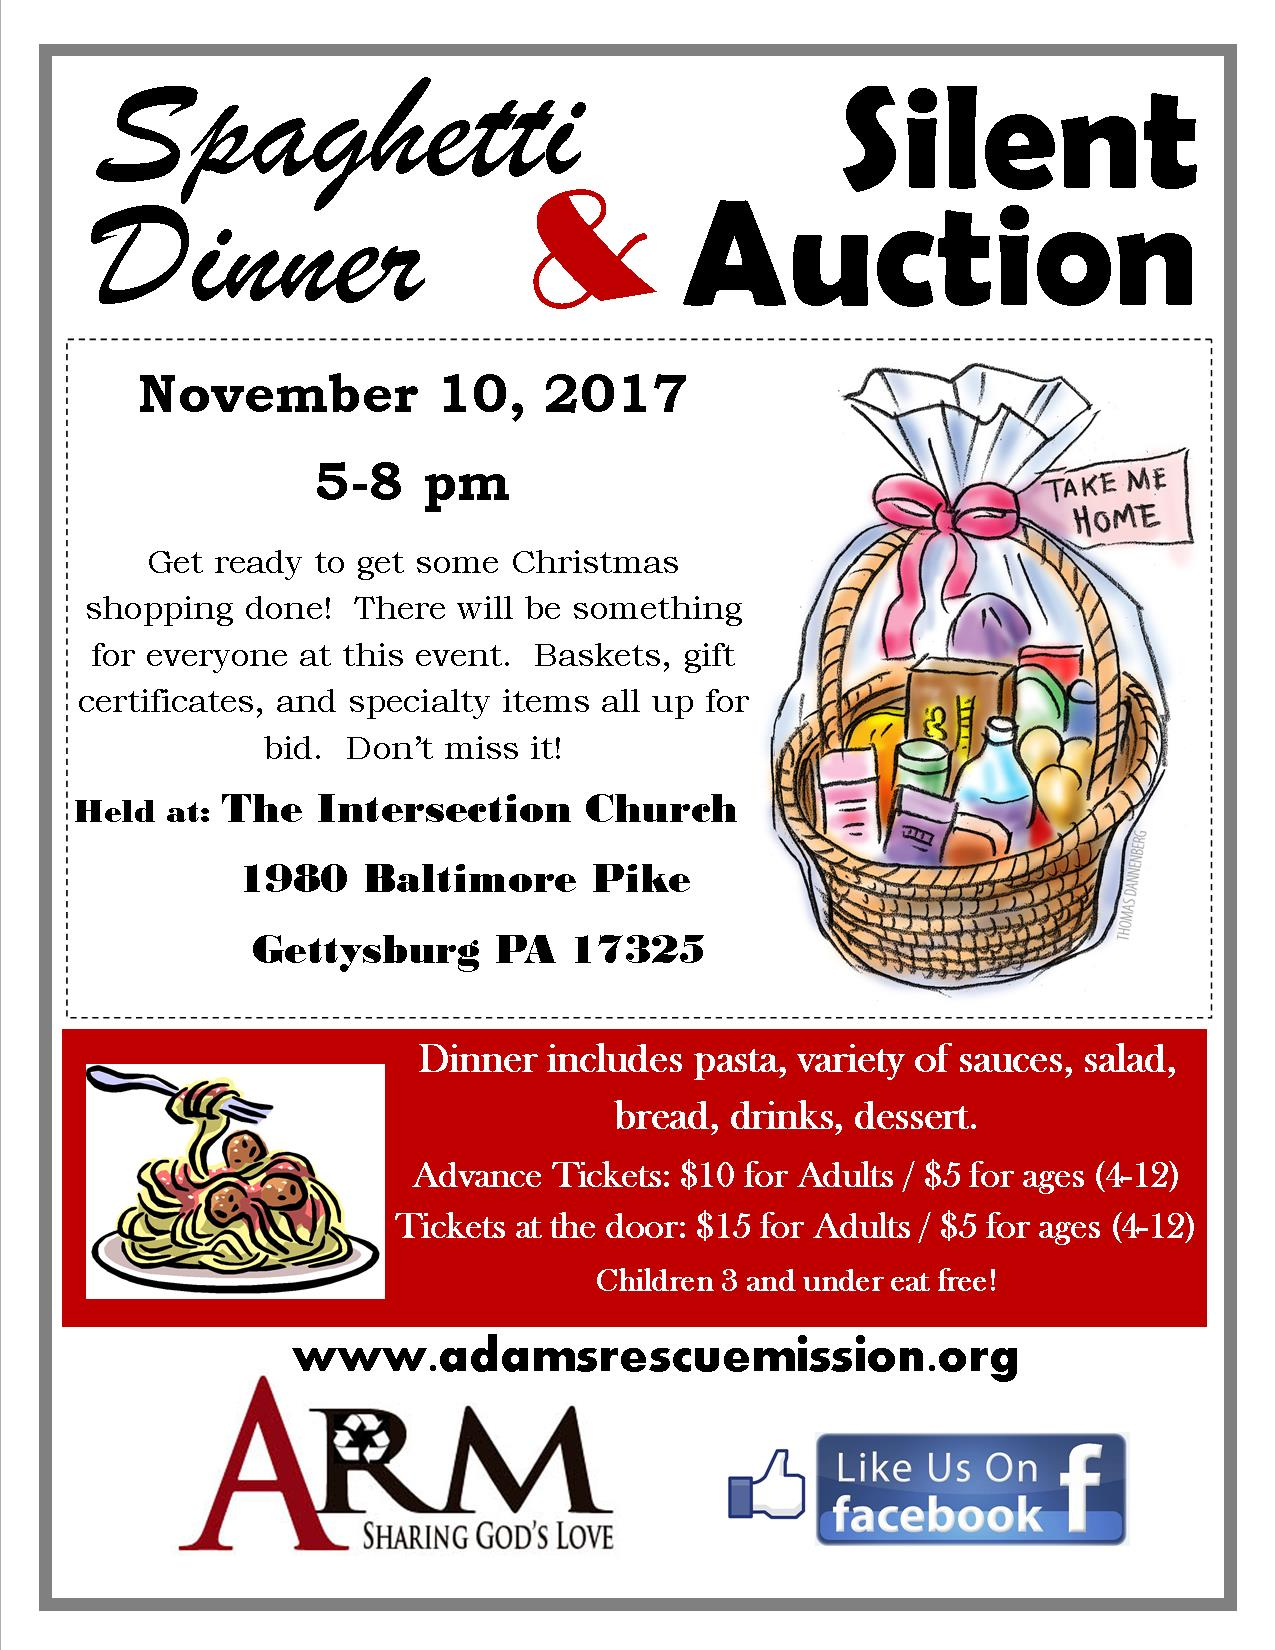 Spaghetti Dinner Auction Focused Ad.jpg